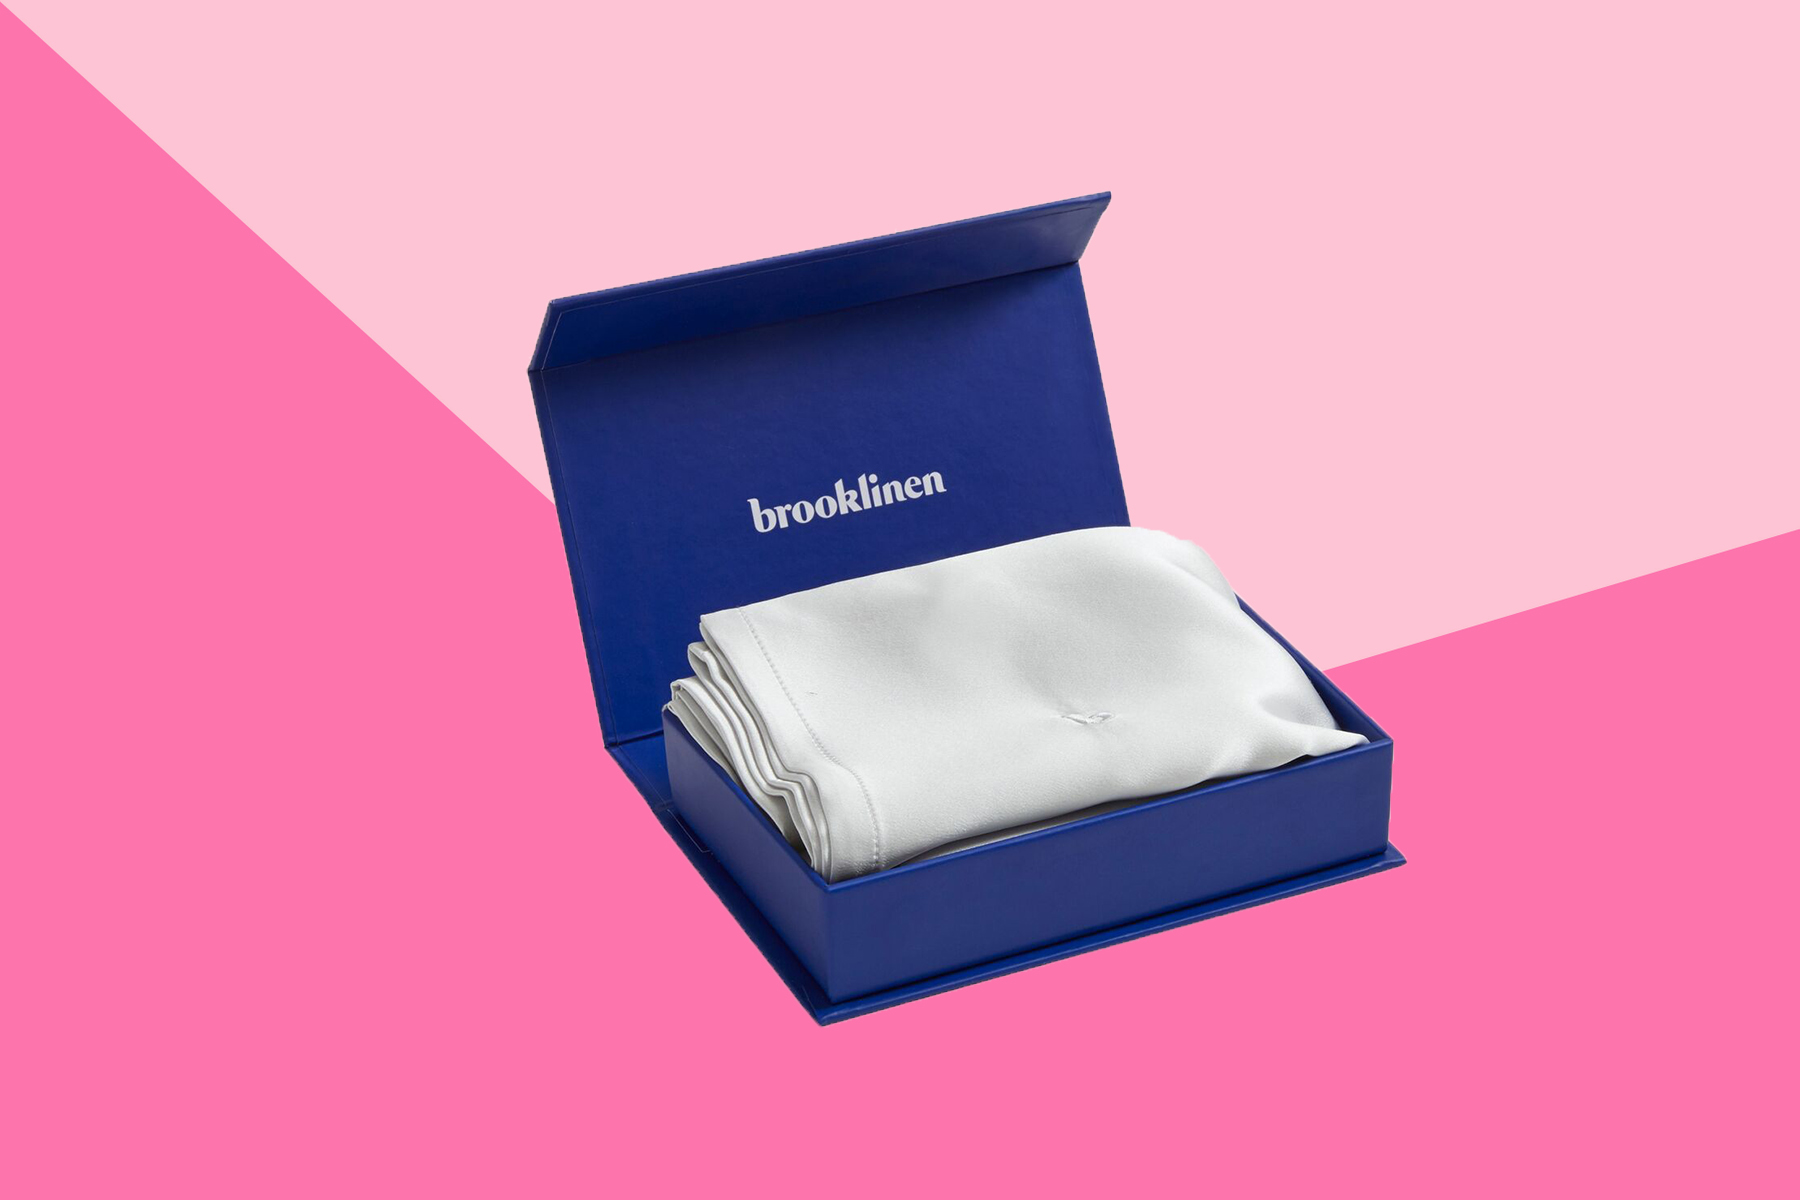 Brooklinen's New Silk Pillowcase Is Our Latest Anti-Aging Secret